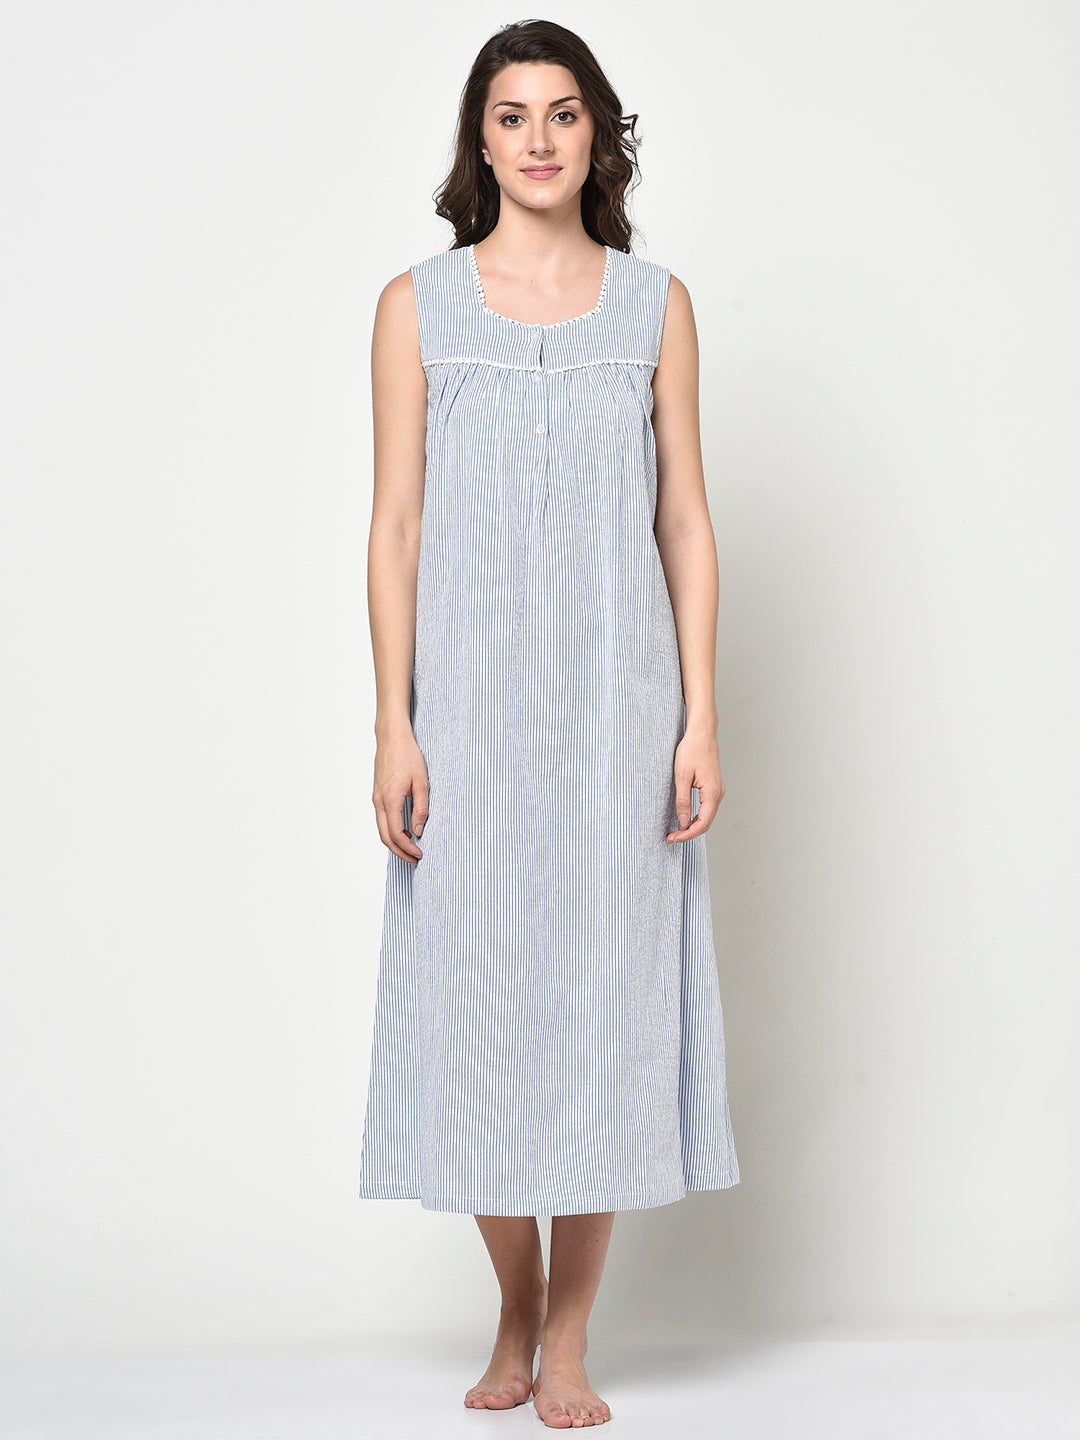 SEERSUCKER LADIES LACE NIGHTY - Avsoy